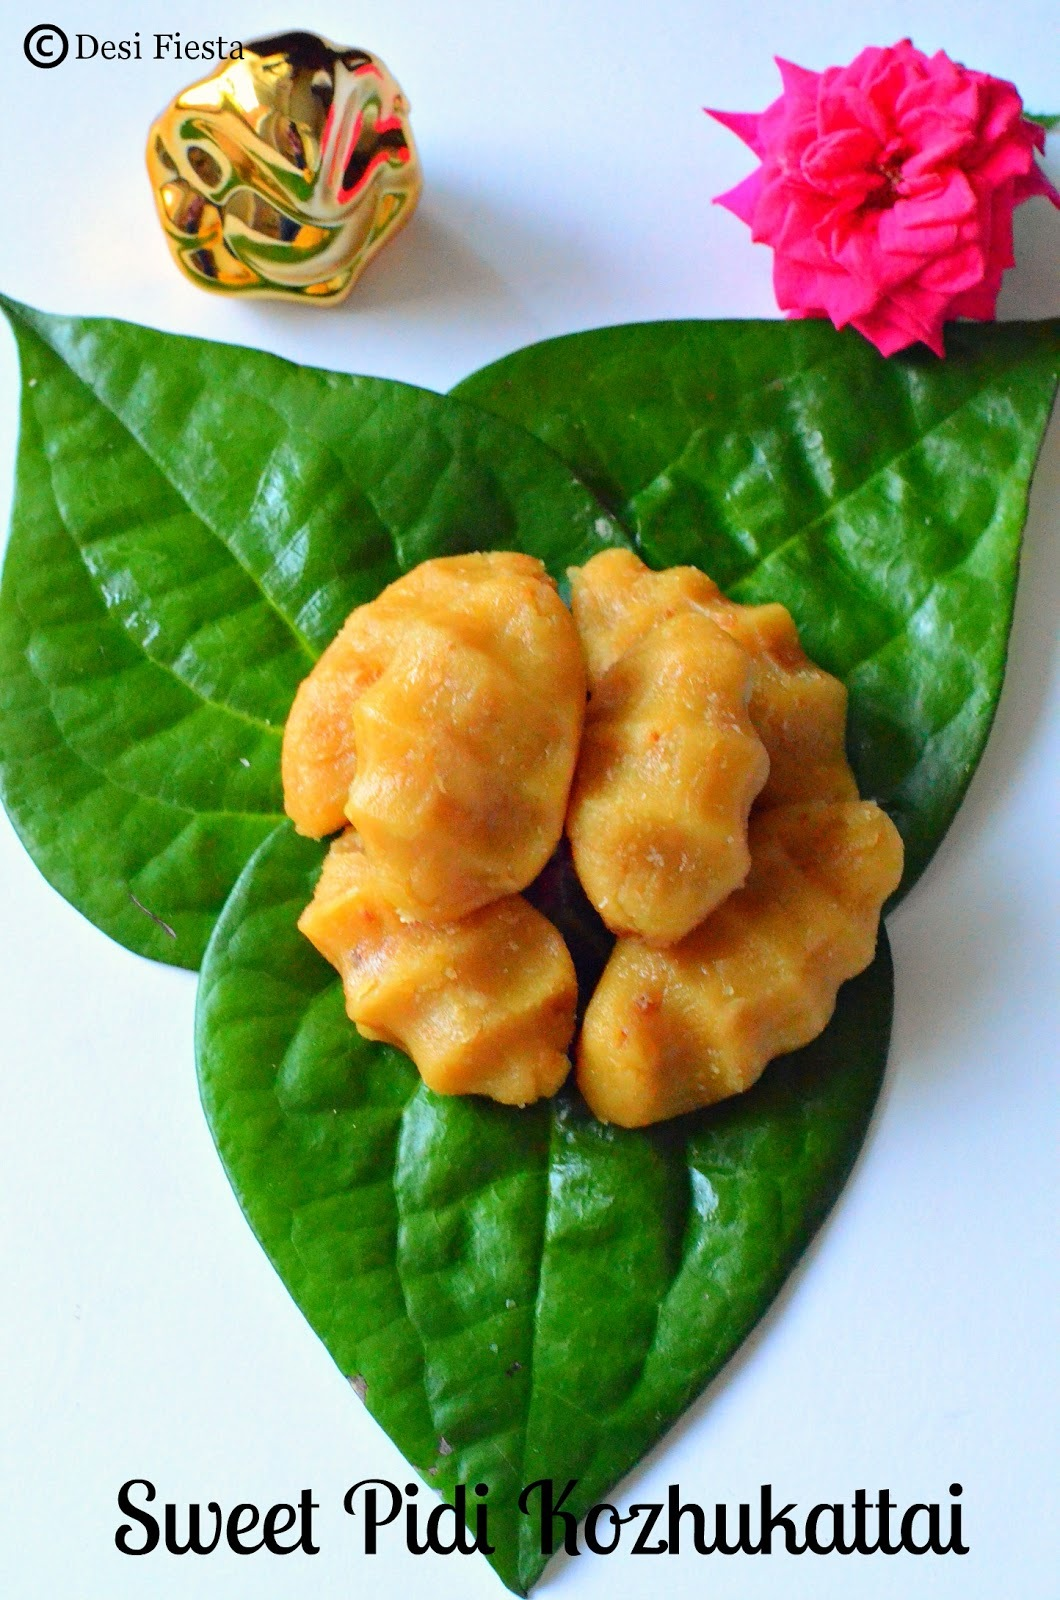 Sweet Pidi Kozhukattai Recipe|Kozhukattai  - Ganesh Chaturthi Recipes